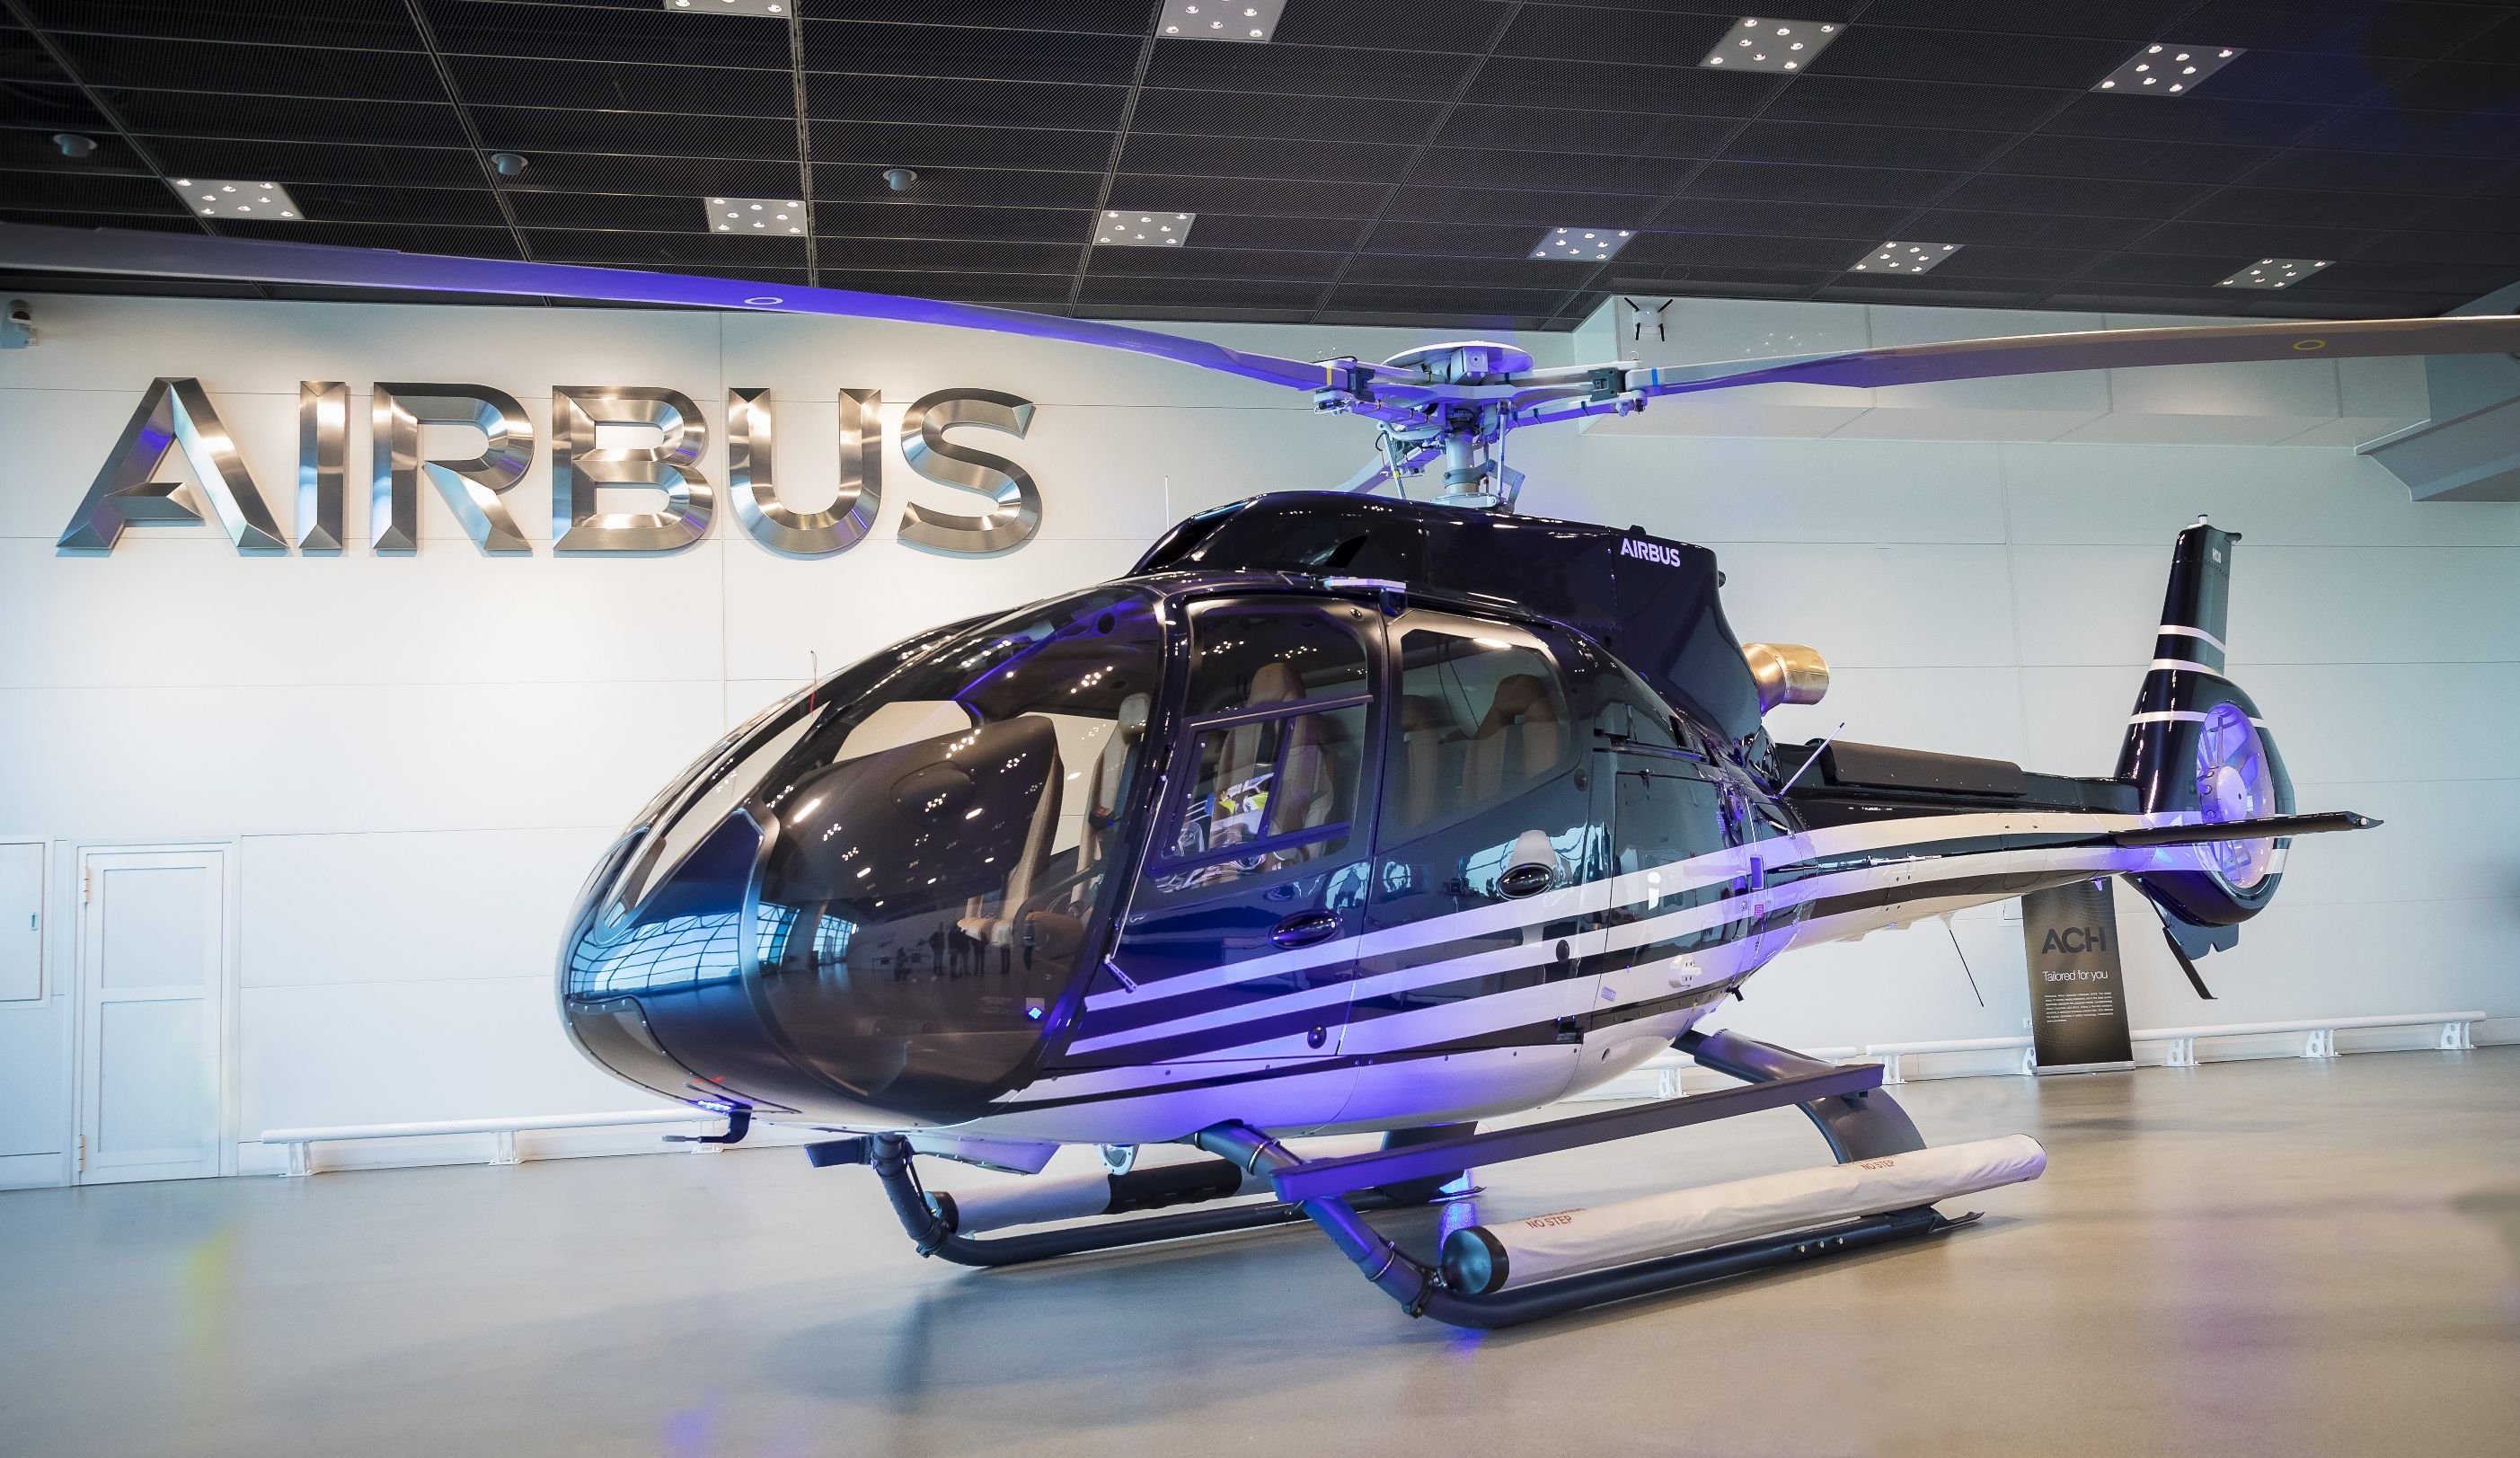 Public presentation of first ACH130 delivered since the launch of Airbus  Corporate Helicopters - Helicopters - Airbus